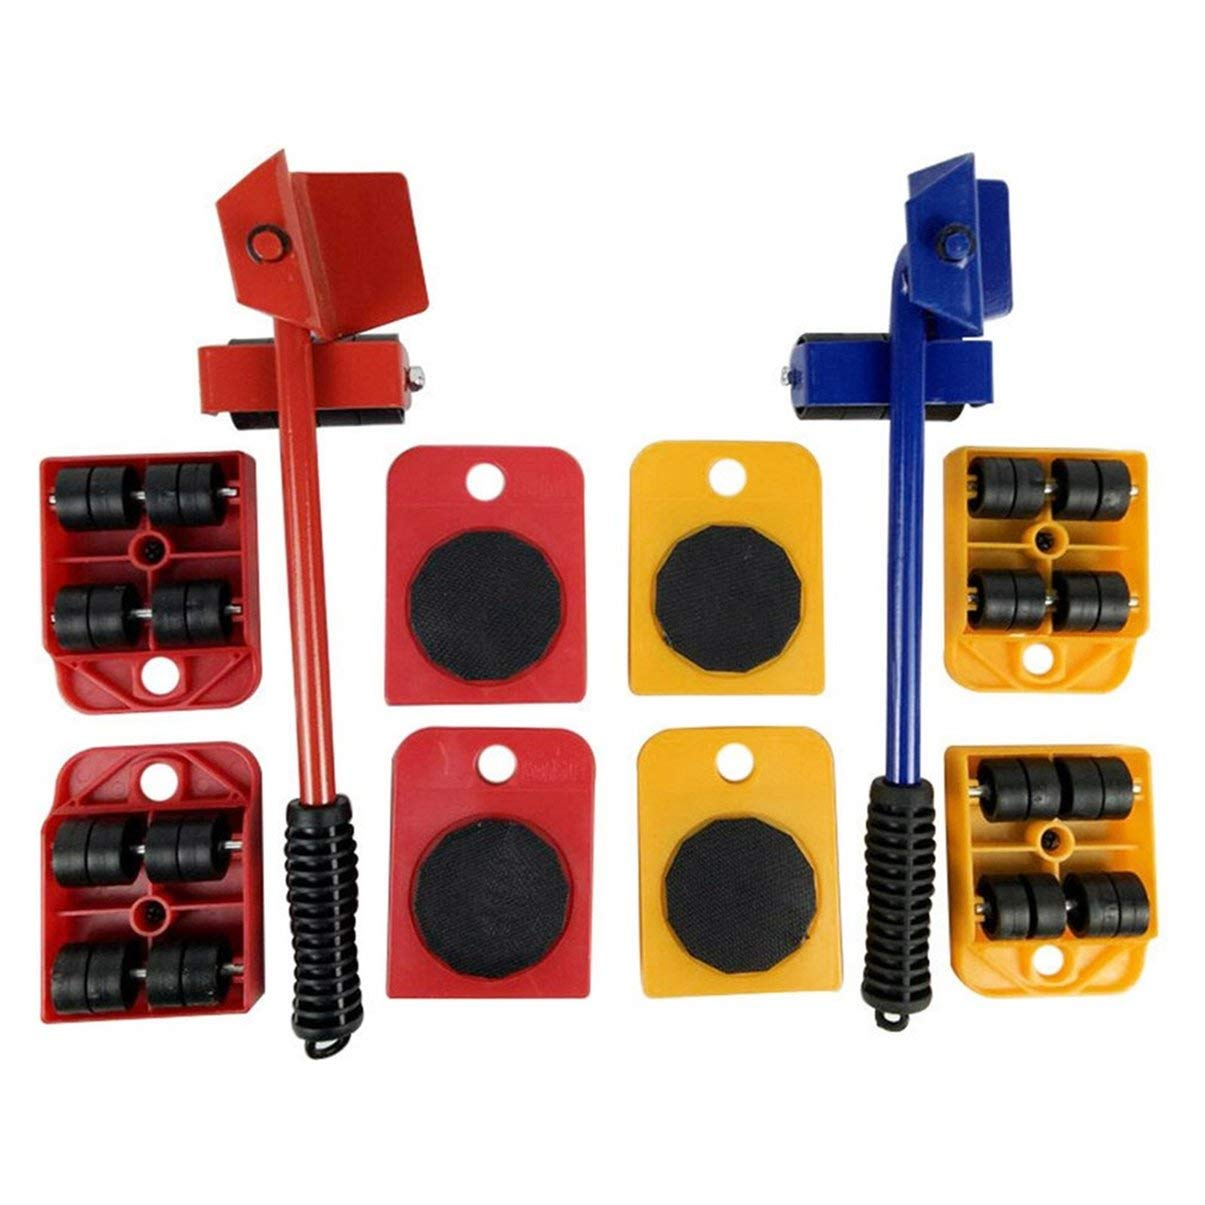 1 Wheeled Lifter 5pcs Furniture Transport Hand Tool Set Furniture Lifter Heavy Mover Rollers 4 Wheeled Corner Movers